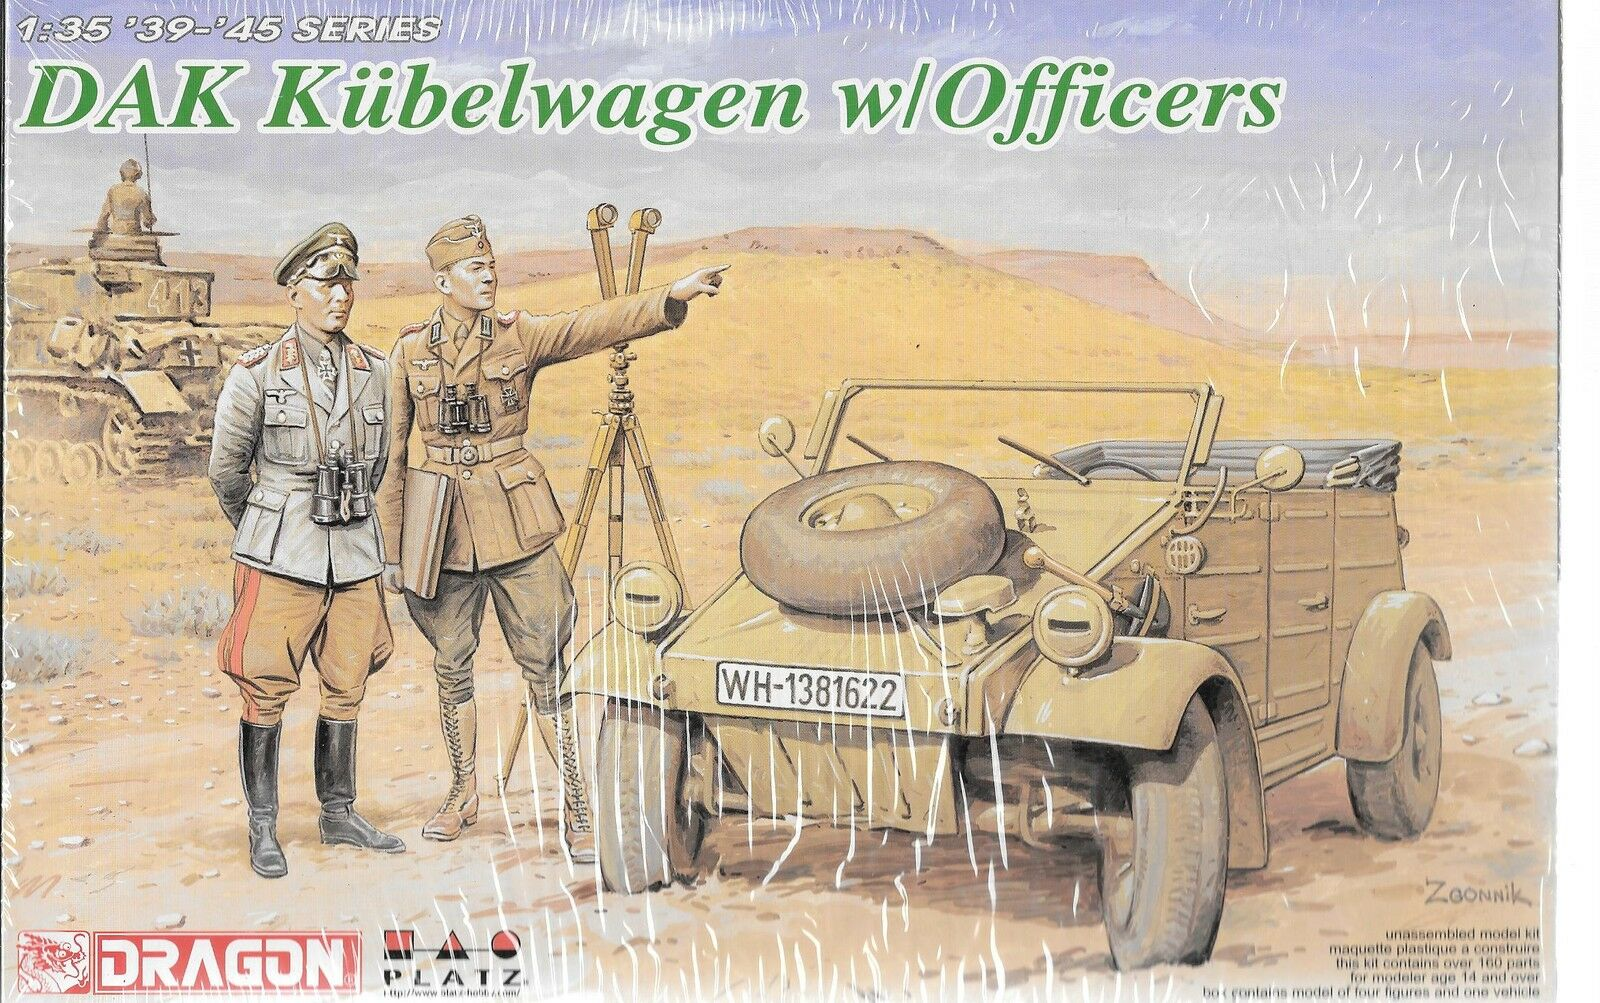 Dragon PLATZ DAK Kubelwagen w Officers in 1 35 6364 ST